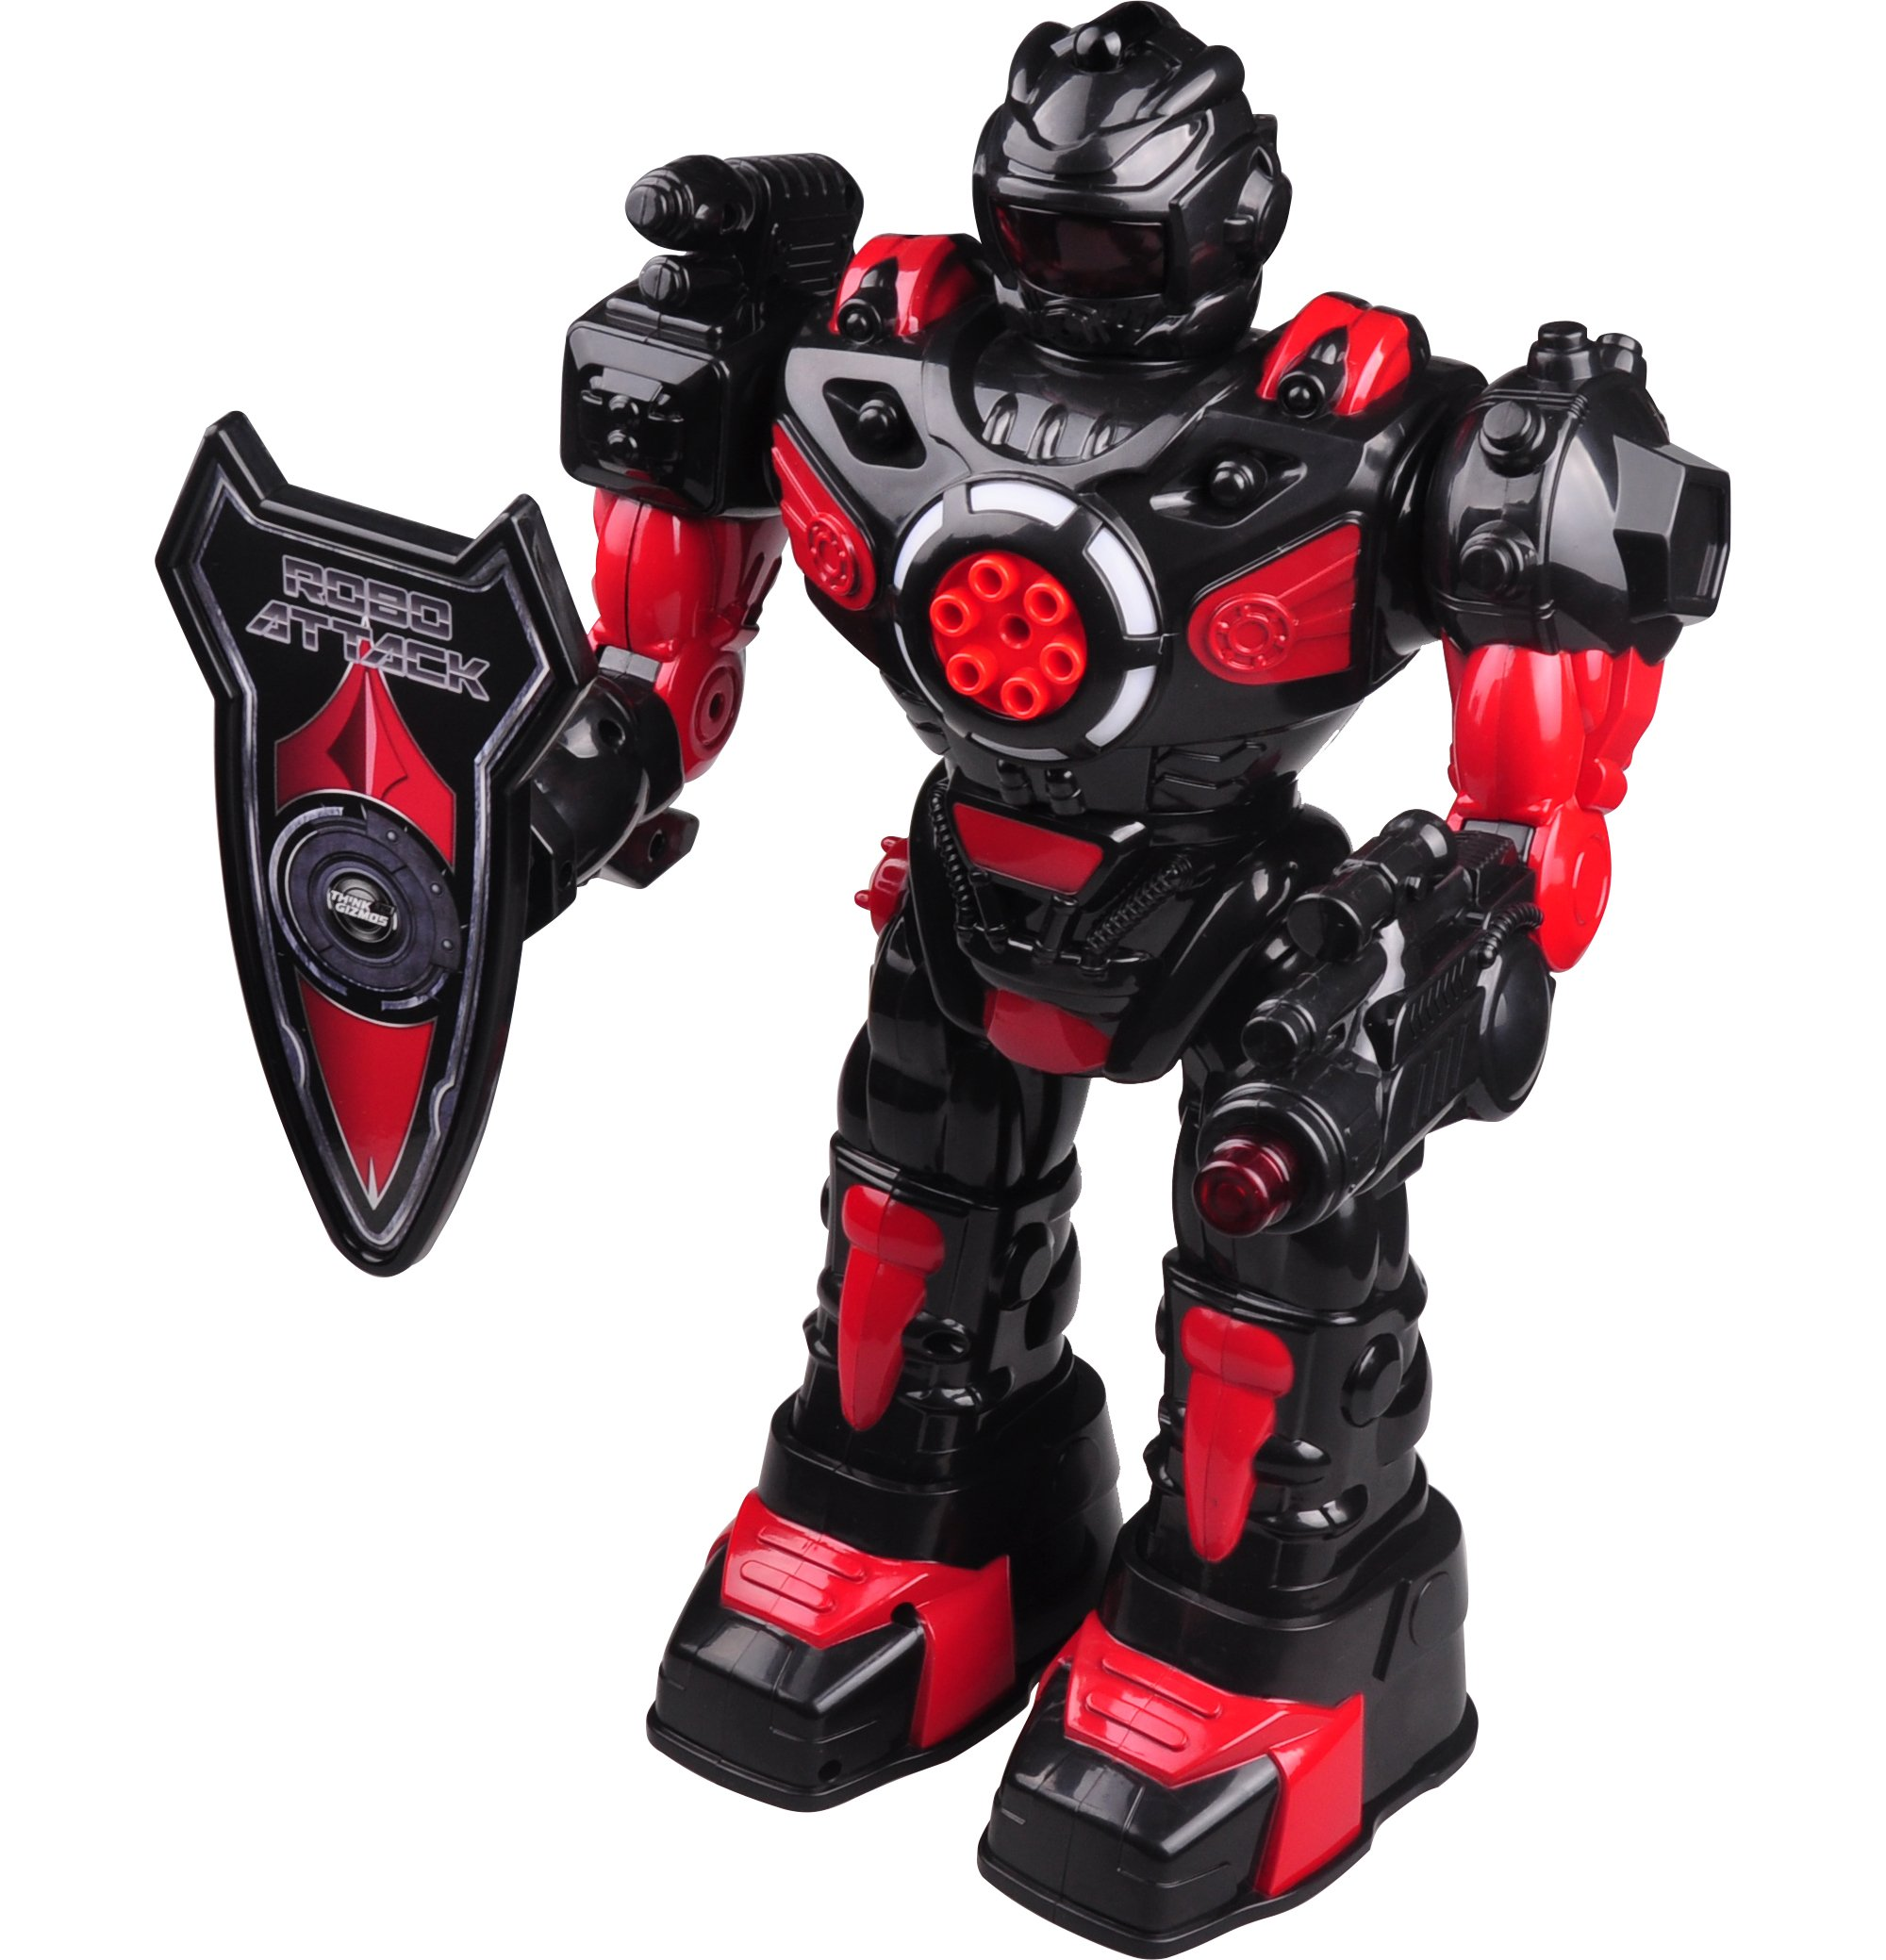 Remote Control Robot For Kids - RoboAttack TG630-R - Black & Red - Superb Fun Toy RC Robot - Shoots Missiles, Walks, Talks & Dances By ThinkGizmos